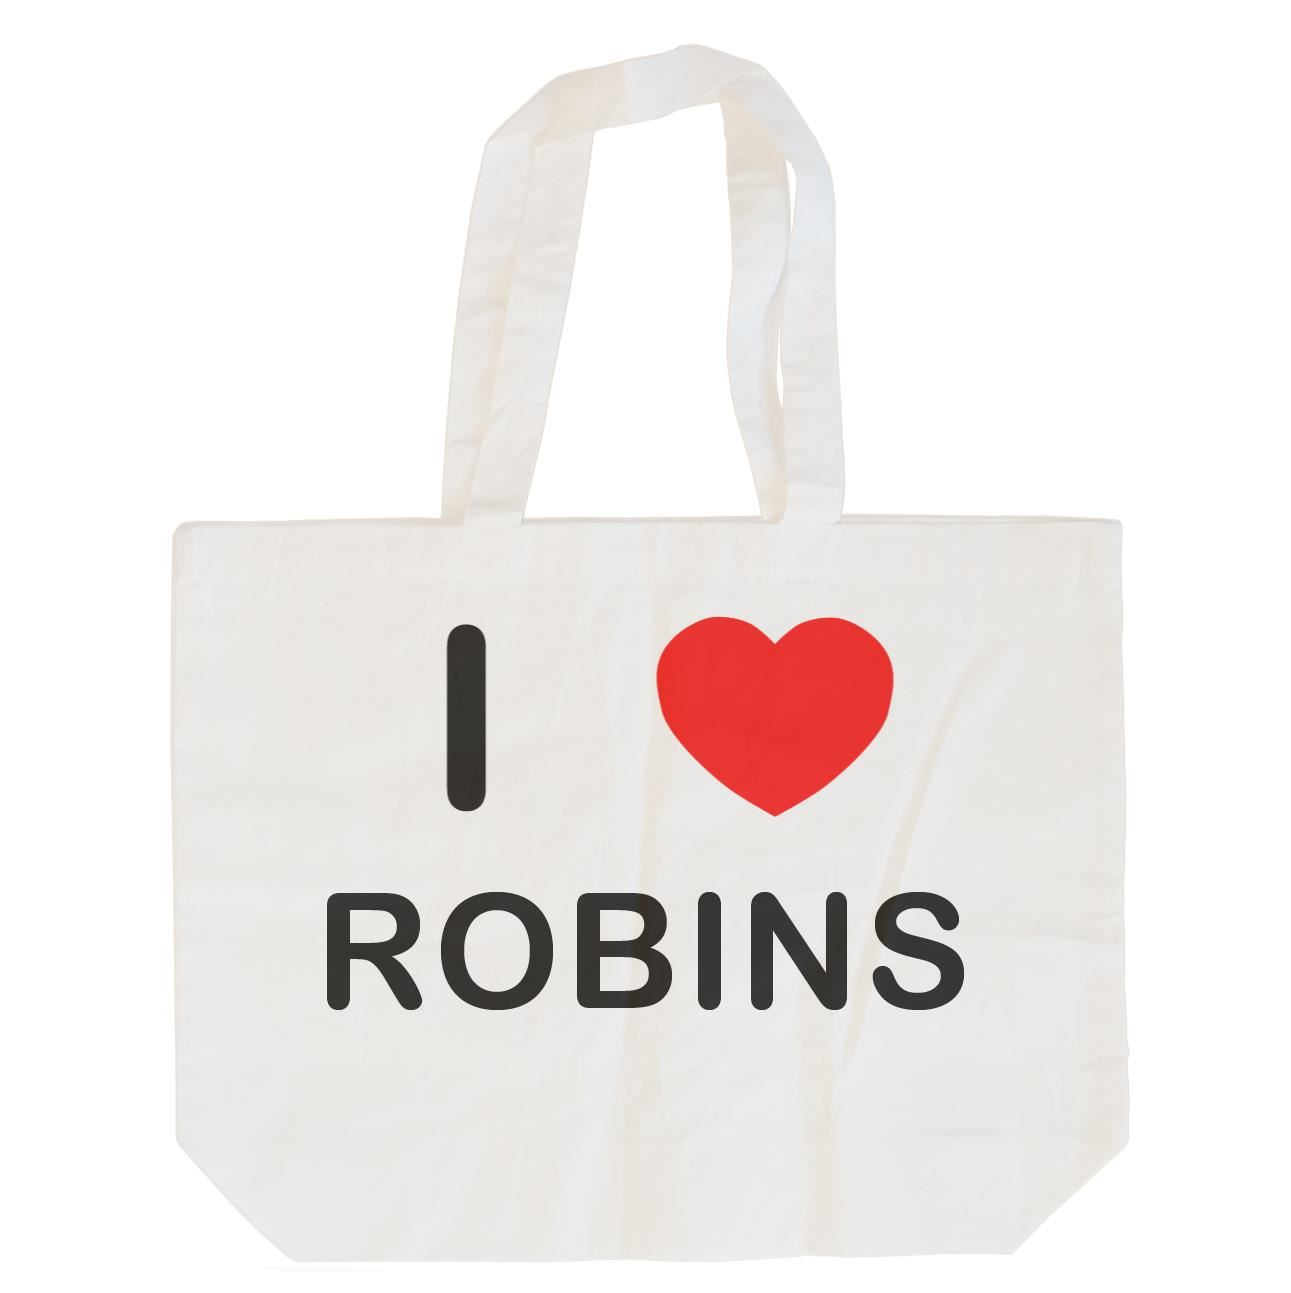 I Love Robins - Cotton Bag | Size choice Tote, Shopper or Sling